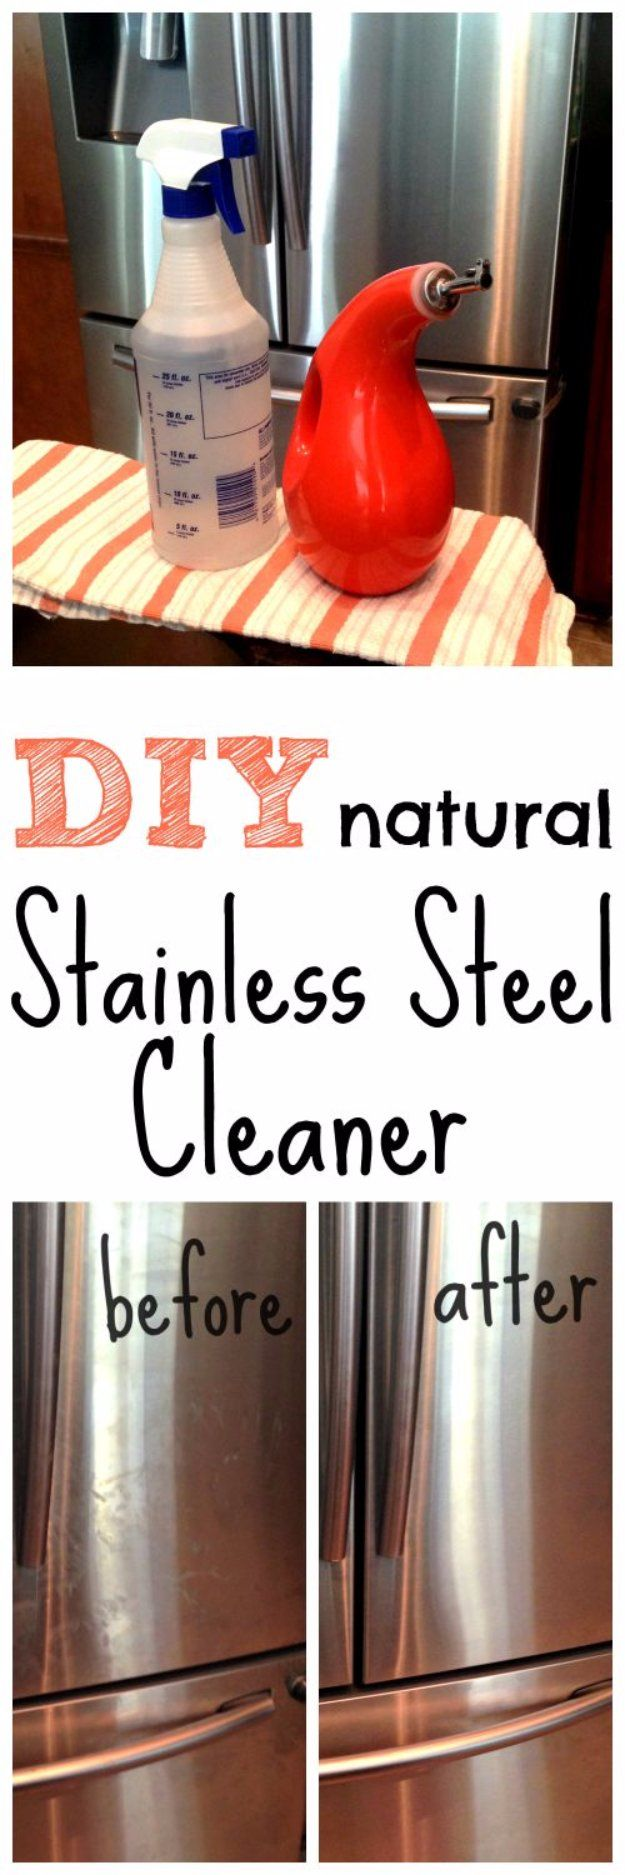 Uncategorized How To Clean Stainless Steel Kitchen Appliances best 20 cleaning stainless appliances ideas on pinterest